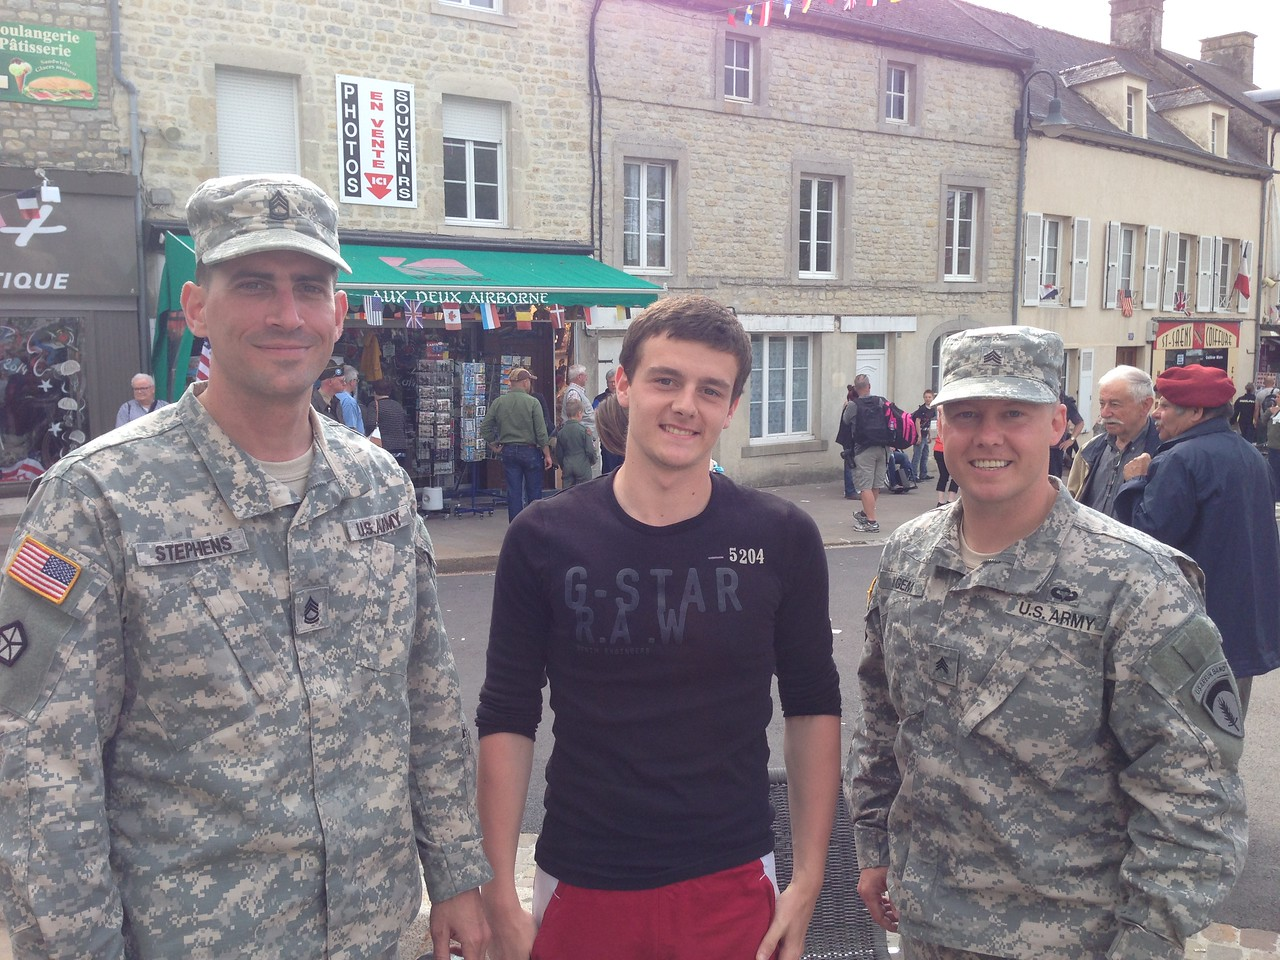 If you walk through the town in uniform you will be asked by random delighted citizens to have their pictures taken with you. I've been to a lot of places, and I've seen a lot of things. I don't know of any other place in the world where American soldiers are held in such high regard.